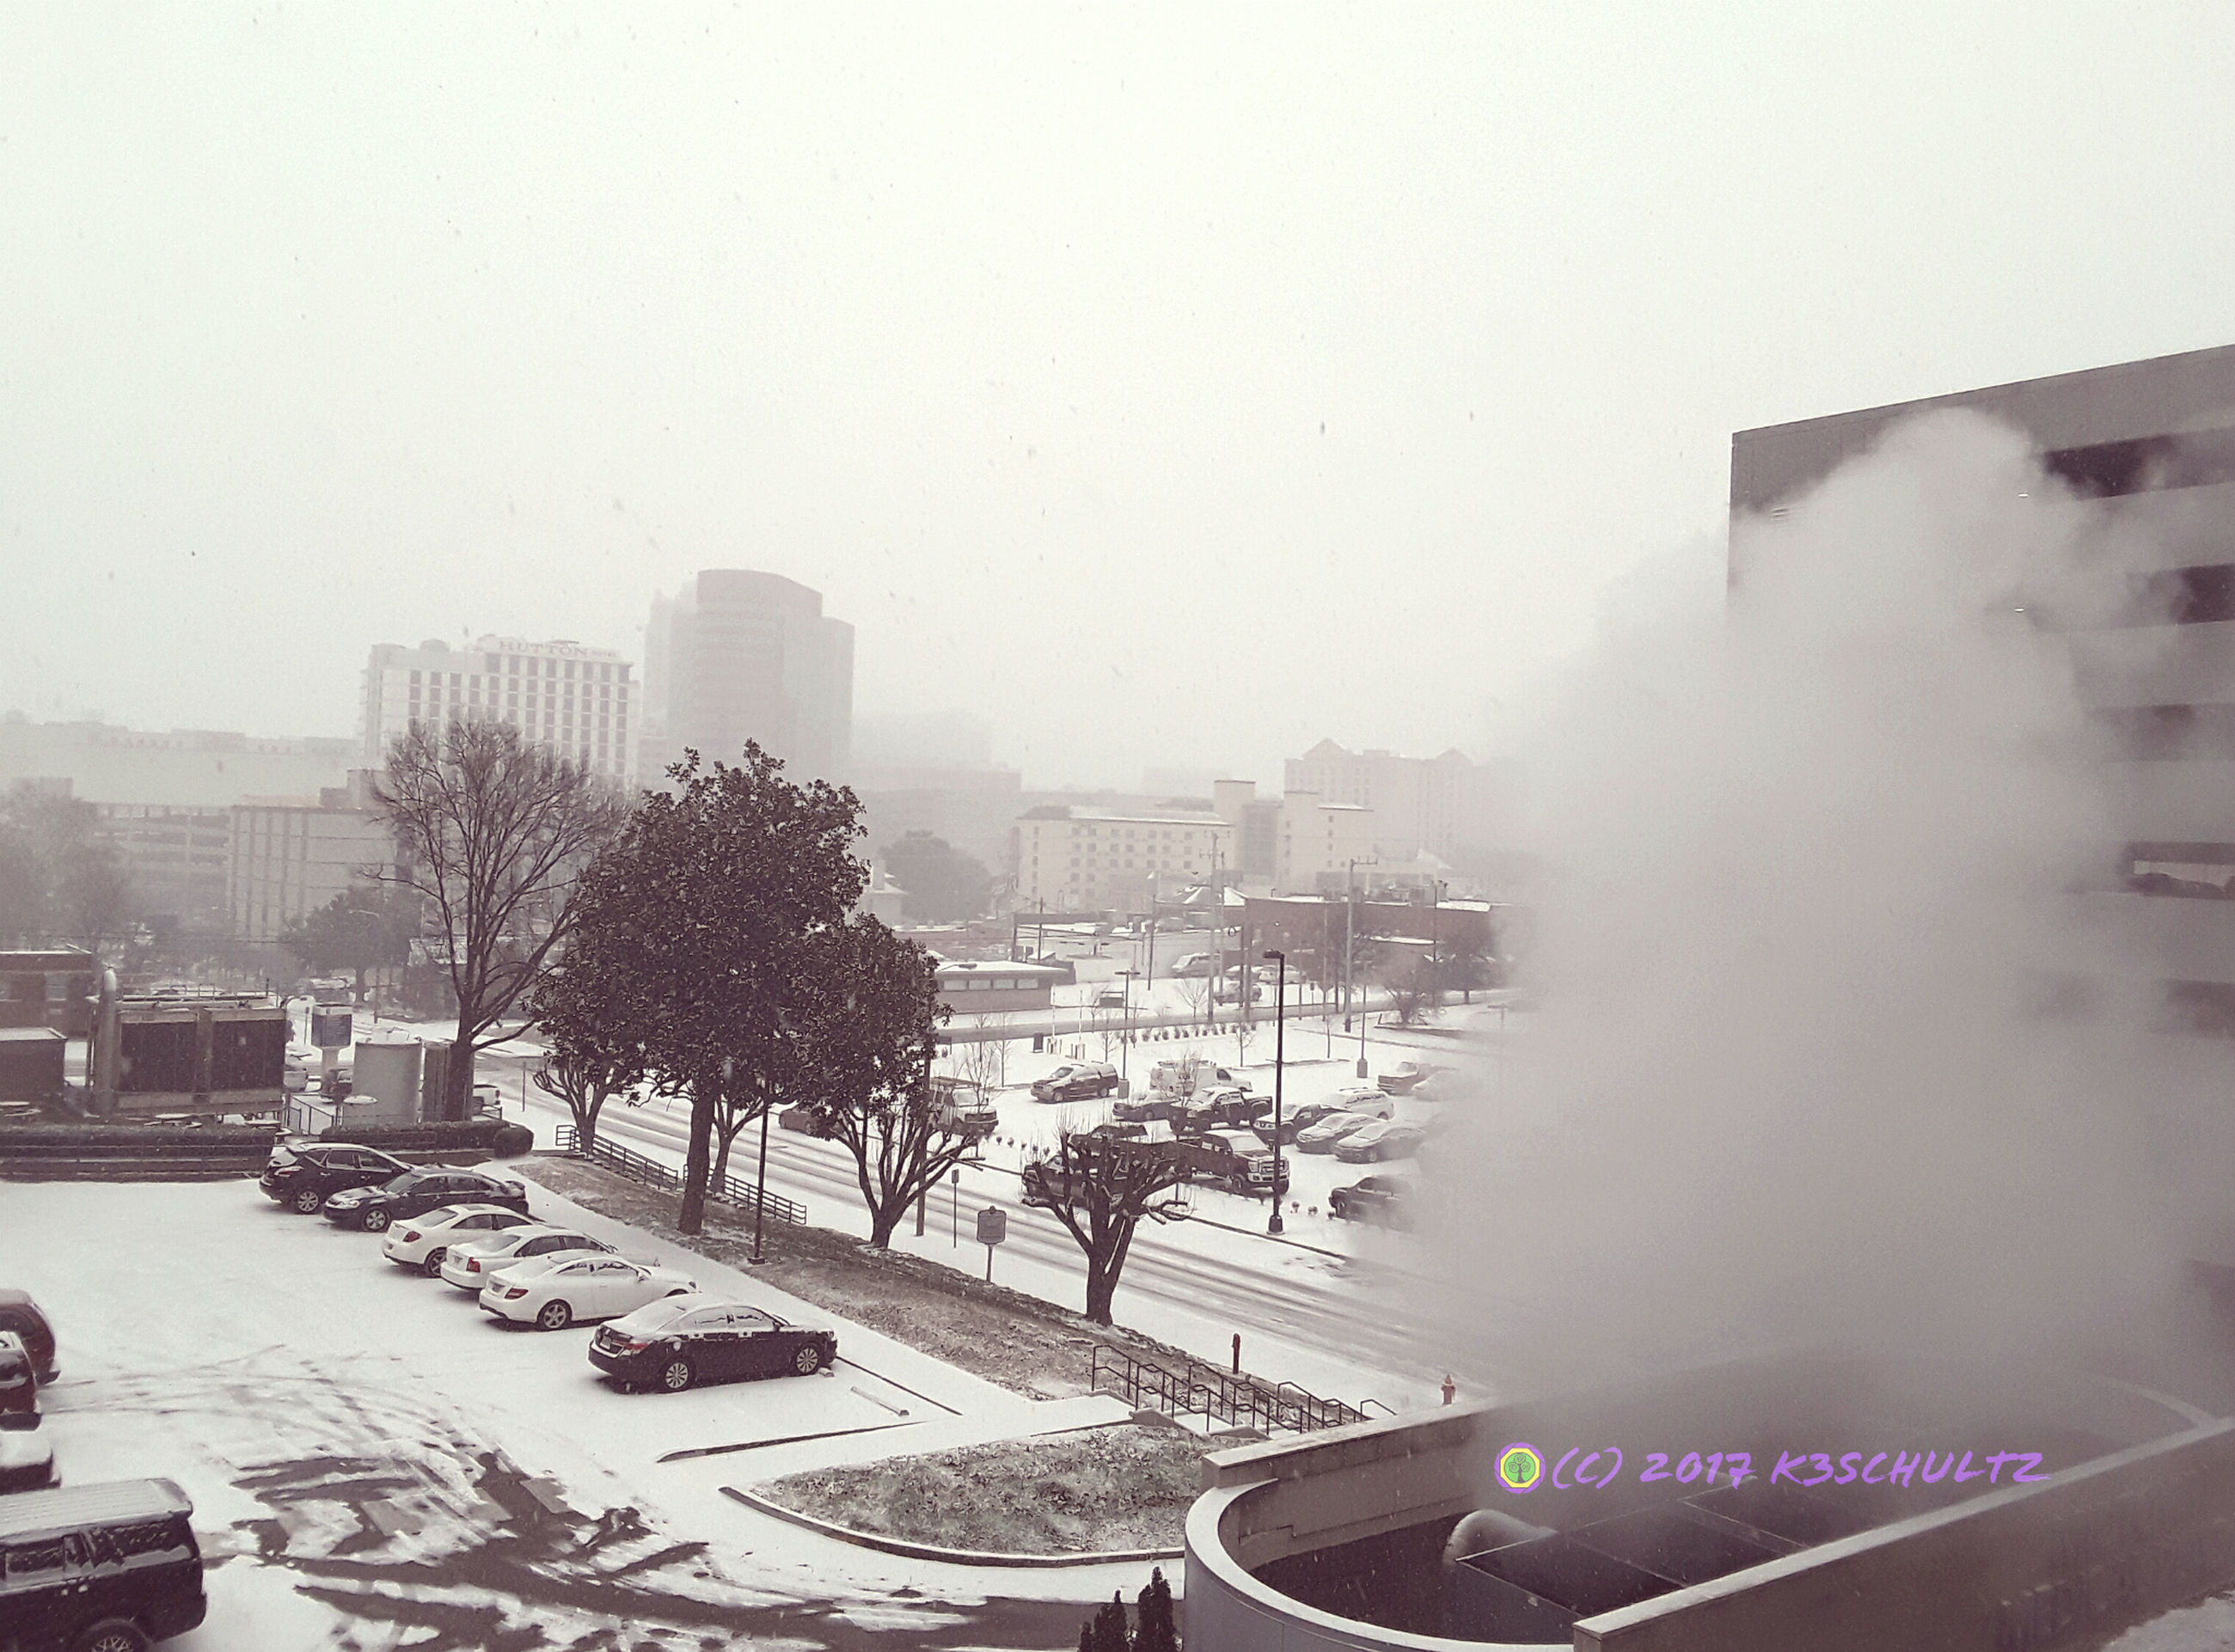 building exterior, city, architecture, built structure, transportation, fog, land vehicle, city life, urban skyline, sky, skyscraper, outdoors, day, cold temperature, cityscape, no people